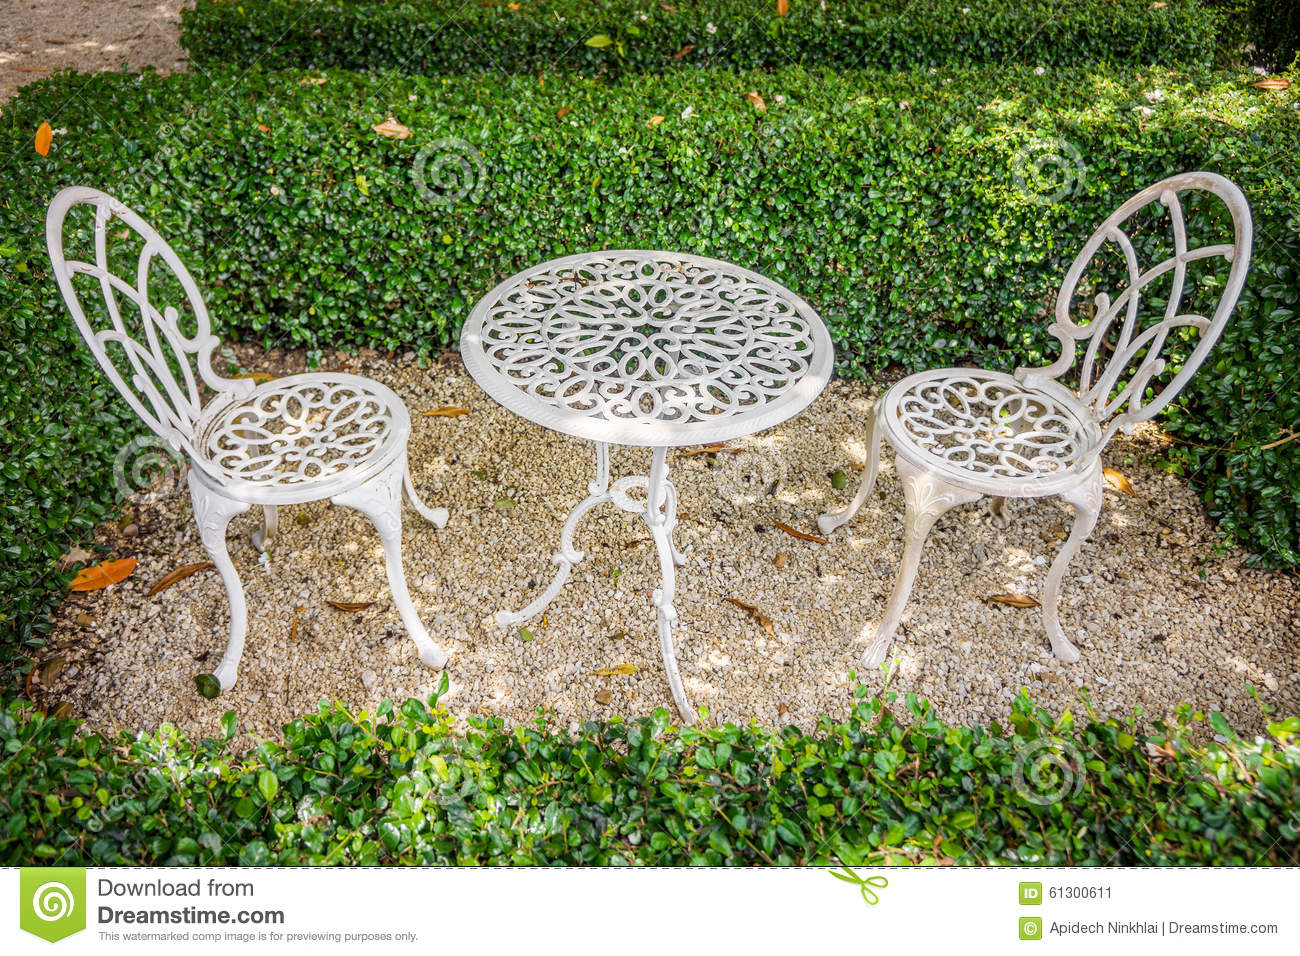 Admirable Vintage White Metal Table And Chairs In Garden Stock Photo Evergreenethics Interior Chair Design Evergreenethicsorg